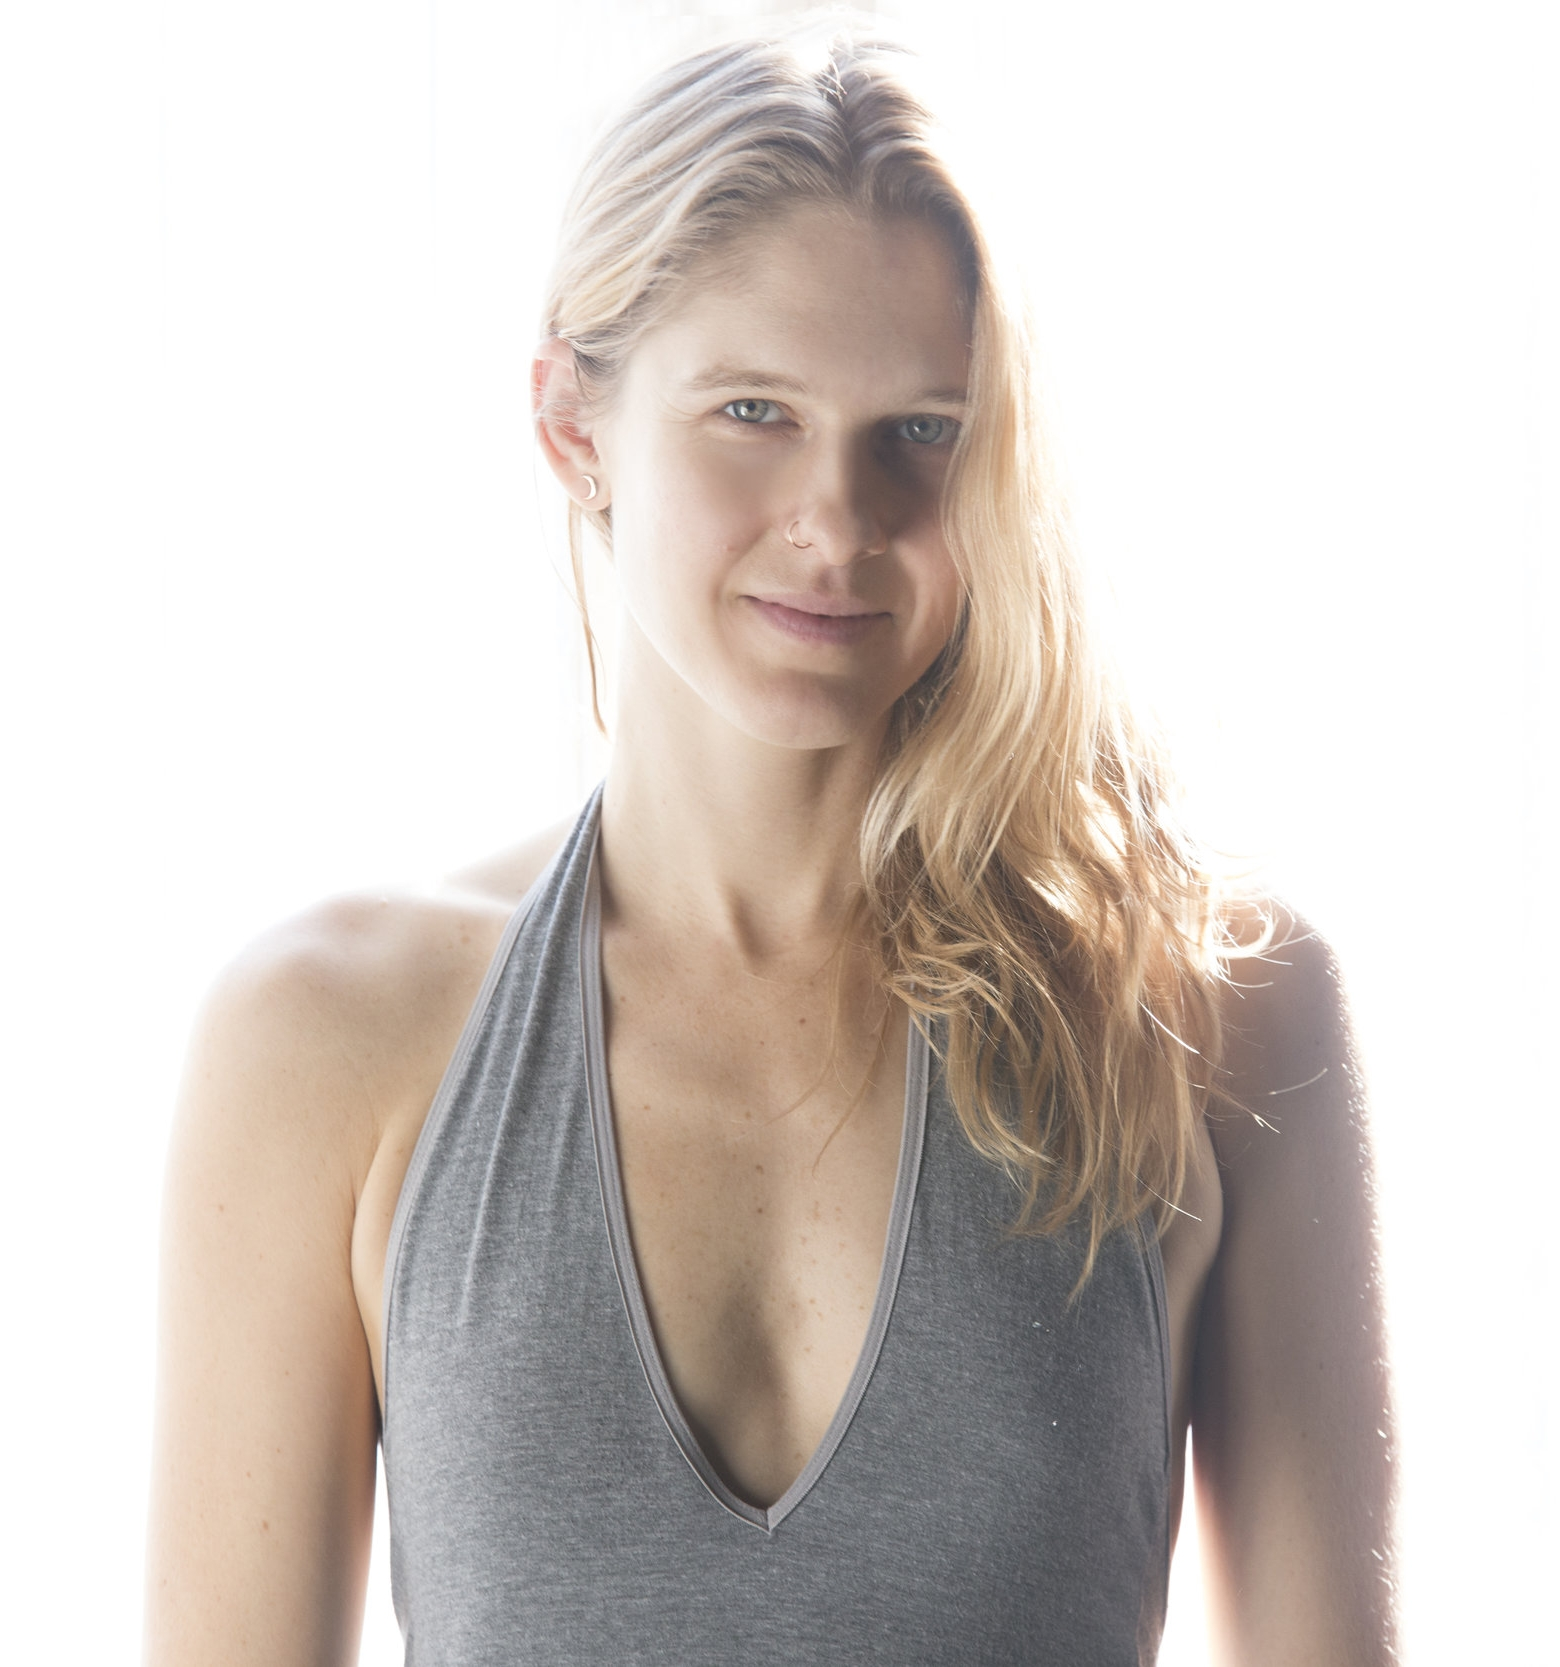 Alison Baenen - Alison is a writer, yoga teacher, intuitive chef, and the content designer for Return of the Queen. She is big believer in the magic that happens when women are present with themselves and each other. She loves using food as a way to plug back into bodies, communities, and the earth.